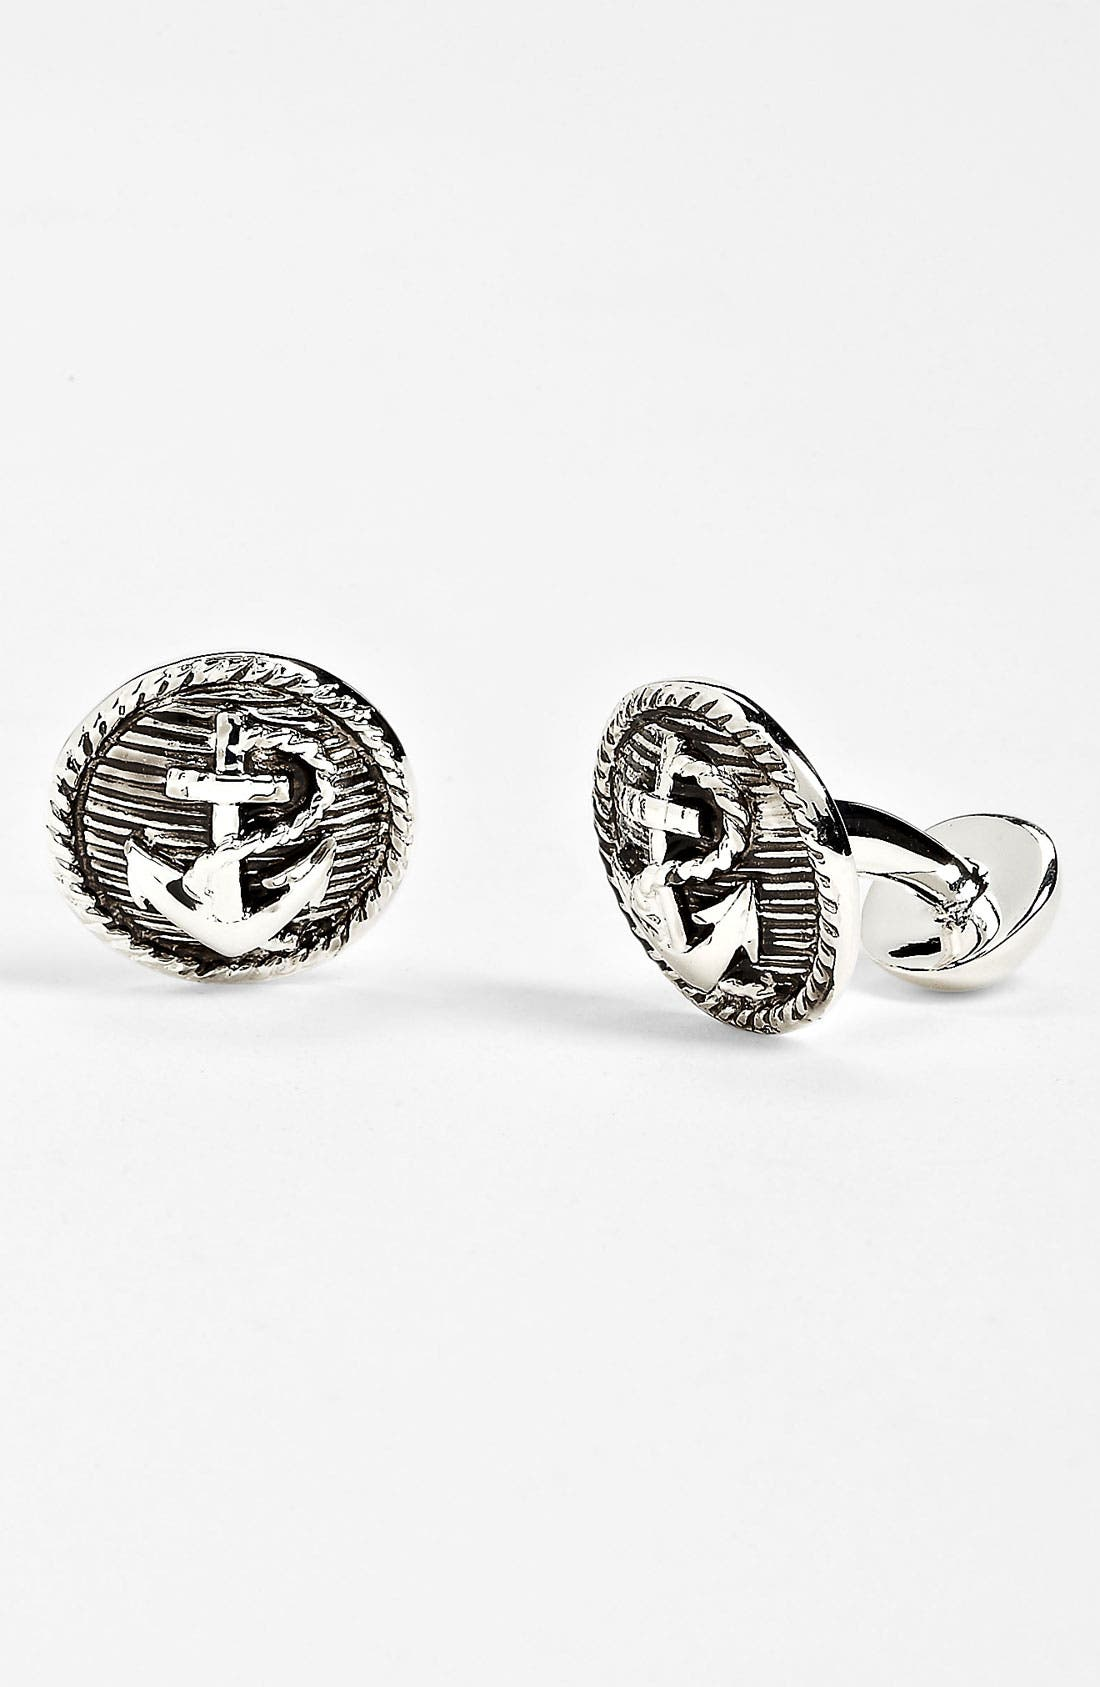 Alternate Image 1 Selected - Thomas Pink 'Anchor' Cuff Links